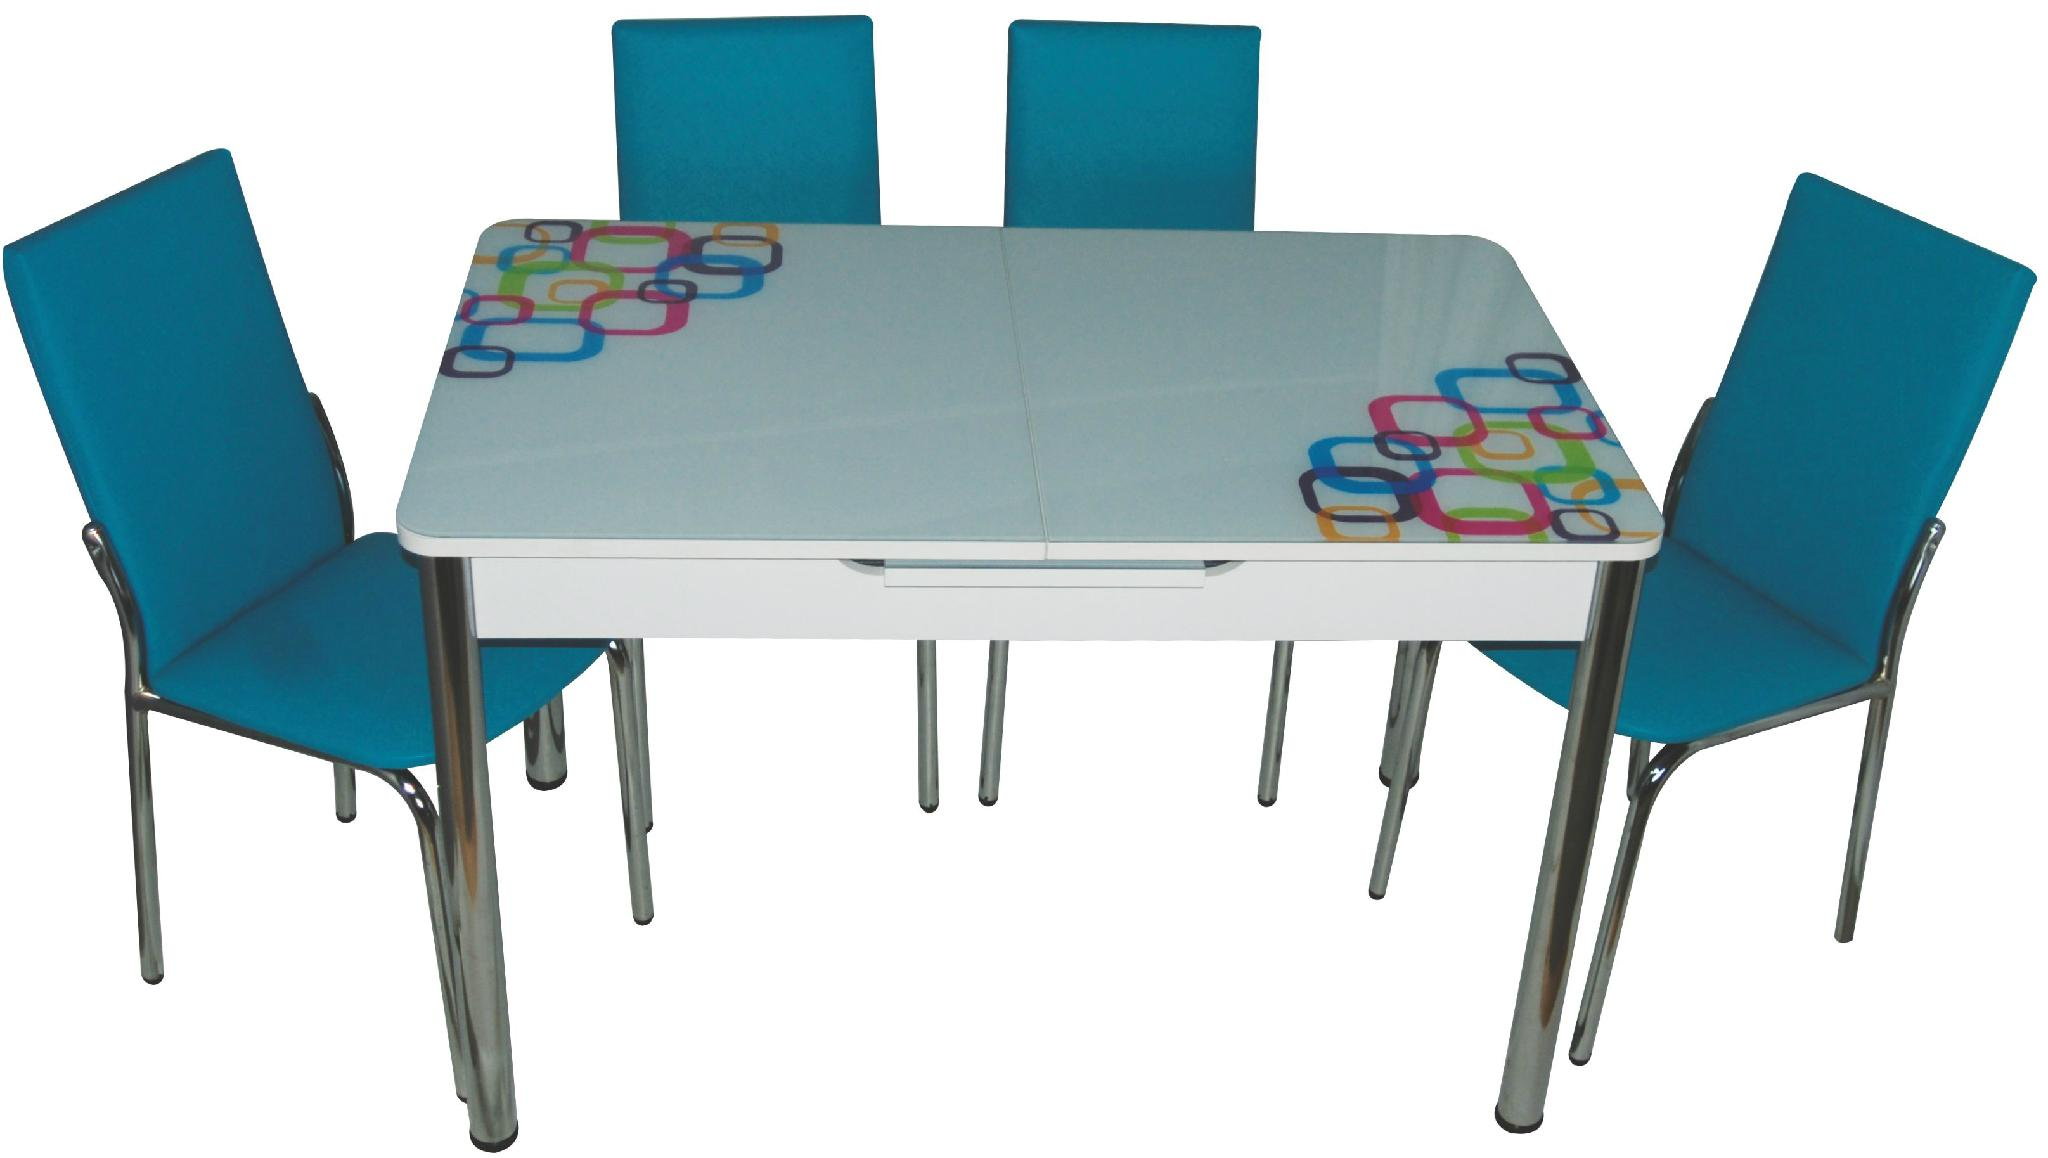 BAF 4015 TABLE - BAF 397 CHAIR 4